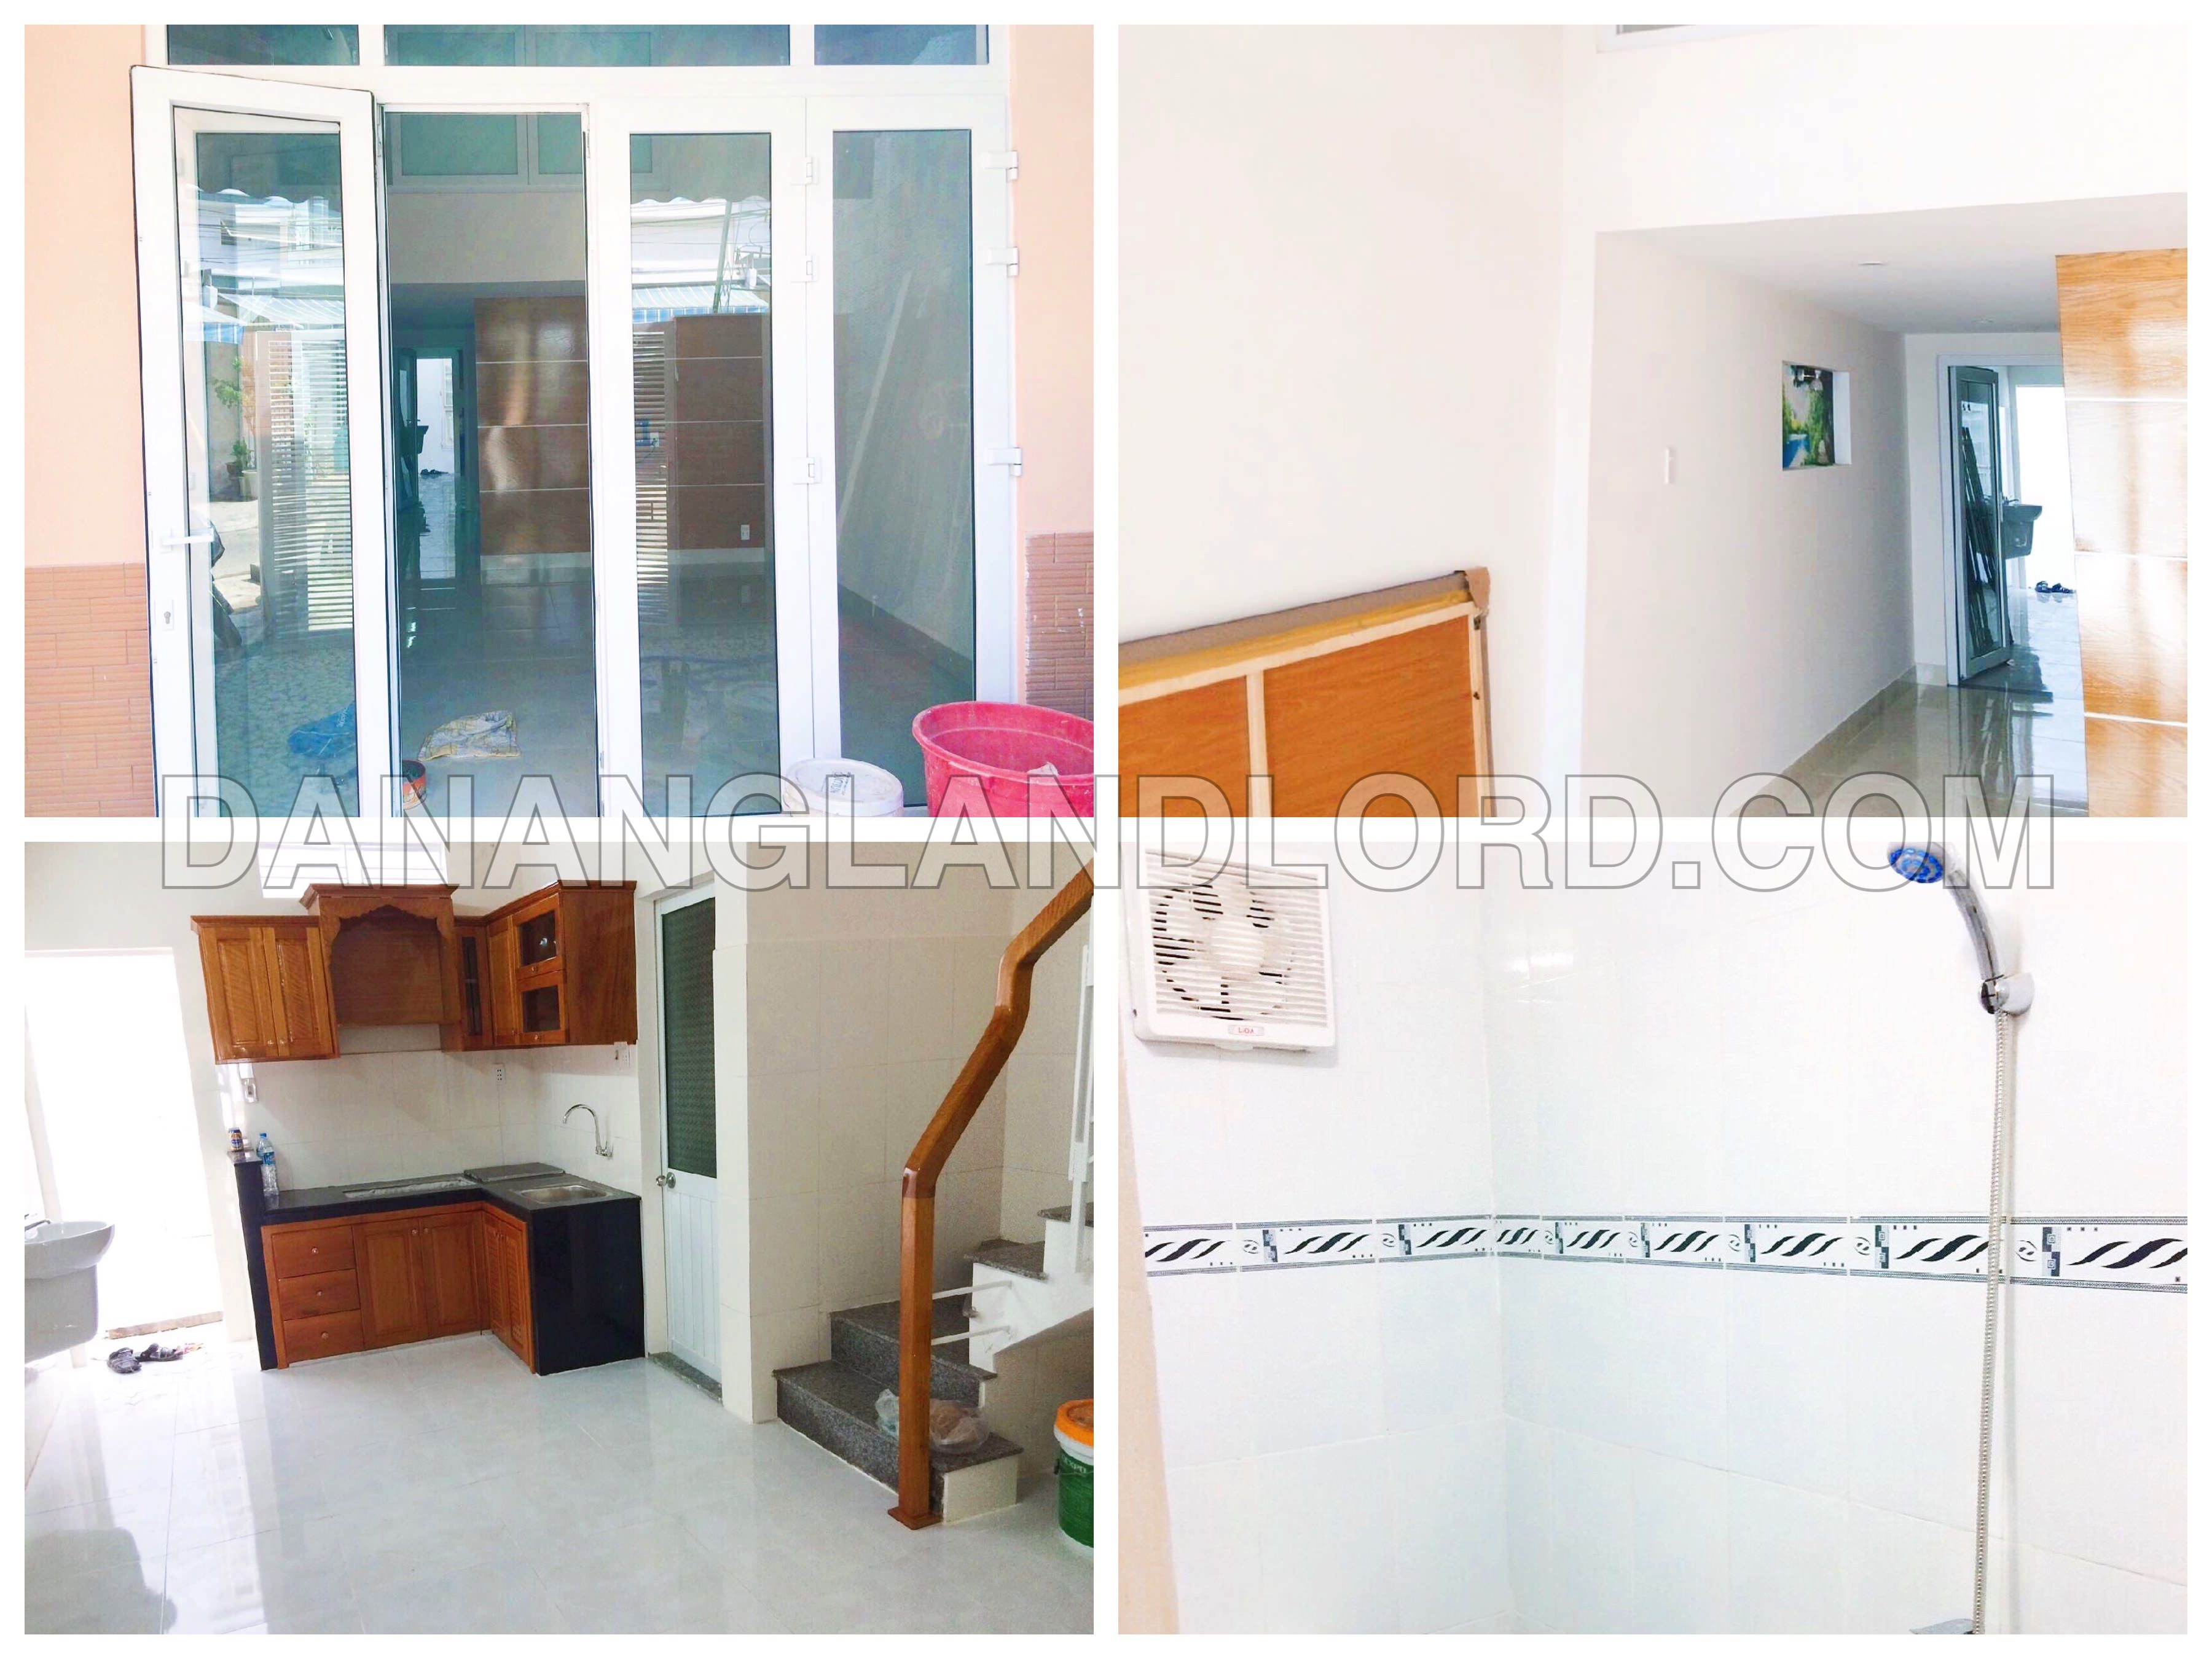 A new bungalow with 2 bedrooms in Pham Van Dong beach